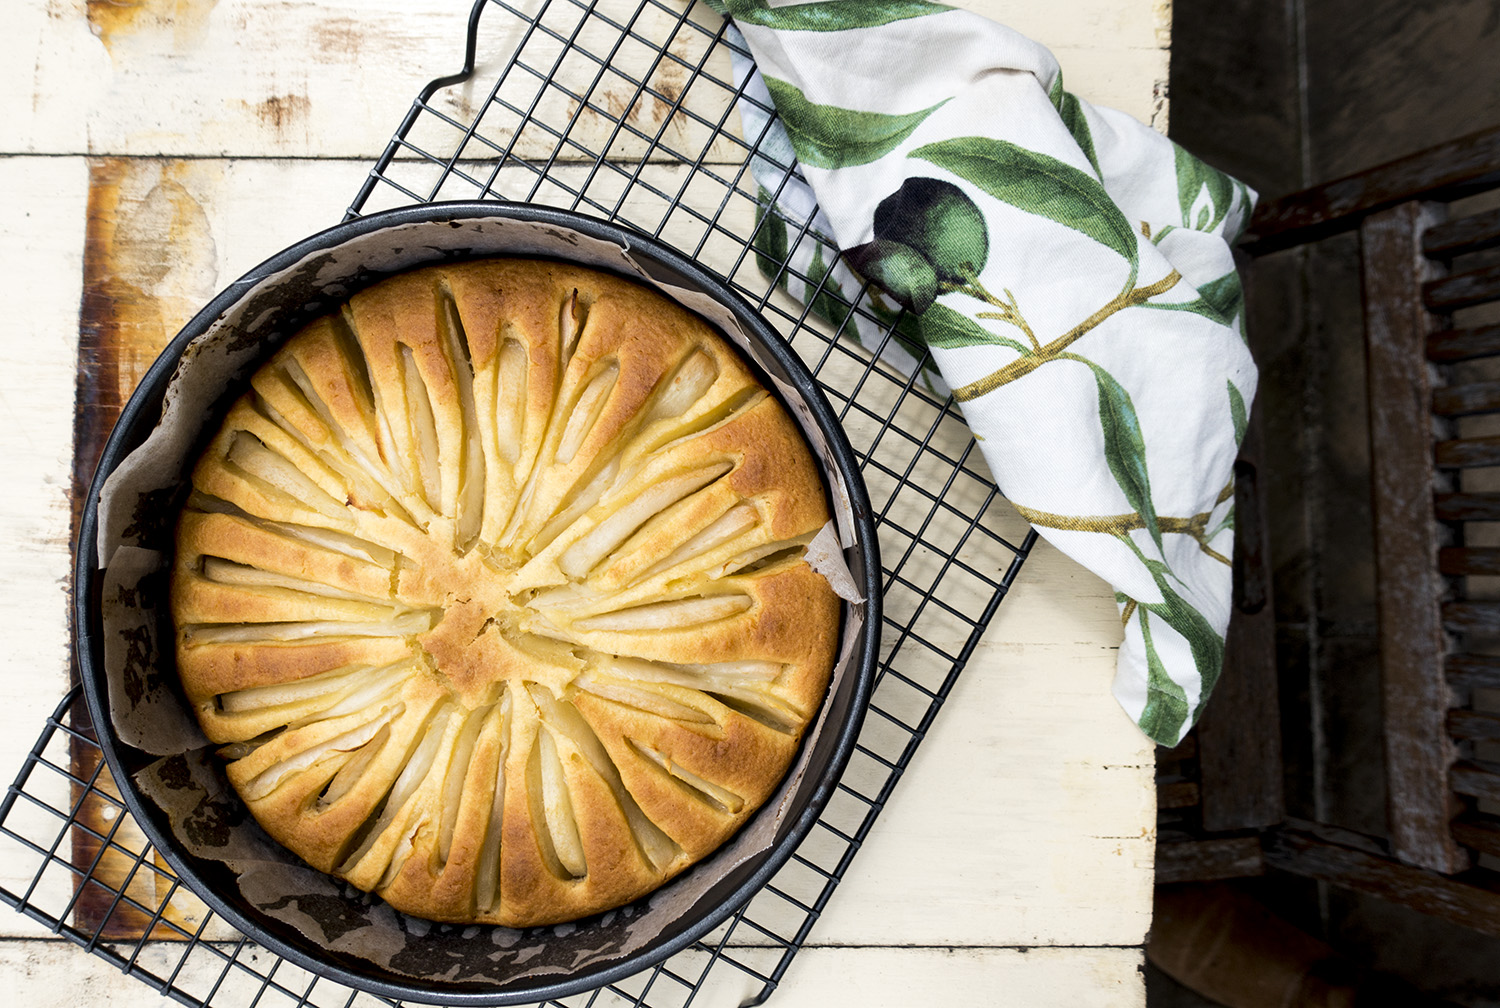 pear cake just out of over-italy on my mind